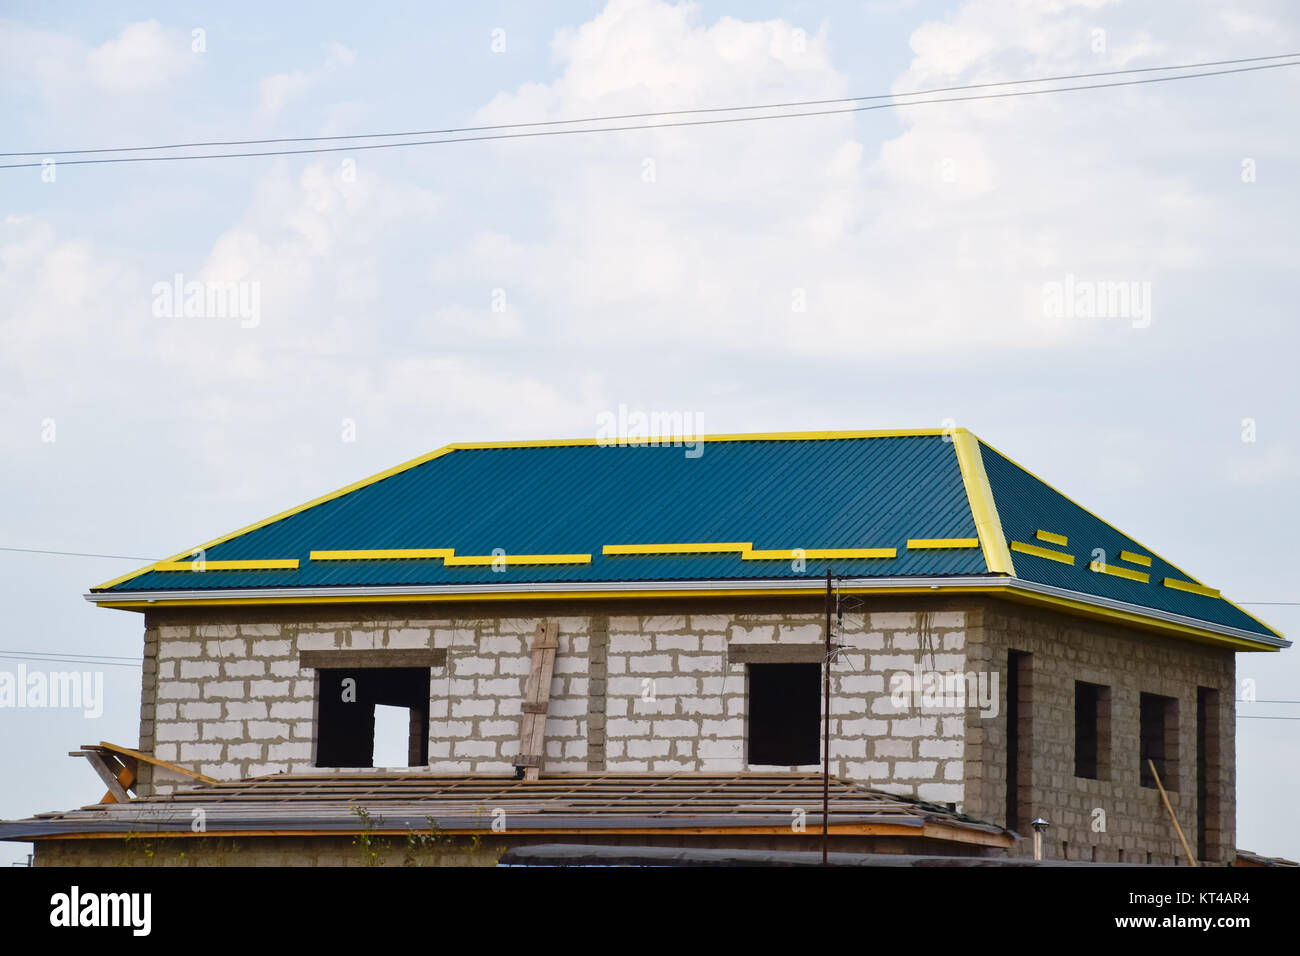 A house with a roof made of metal sheets. Yellow skating on the roof - Stock Image